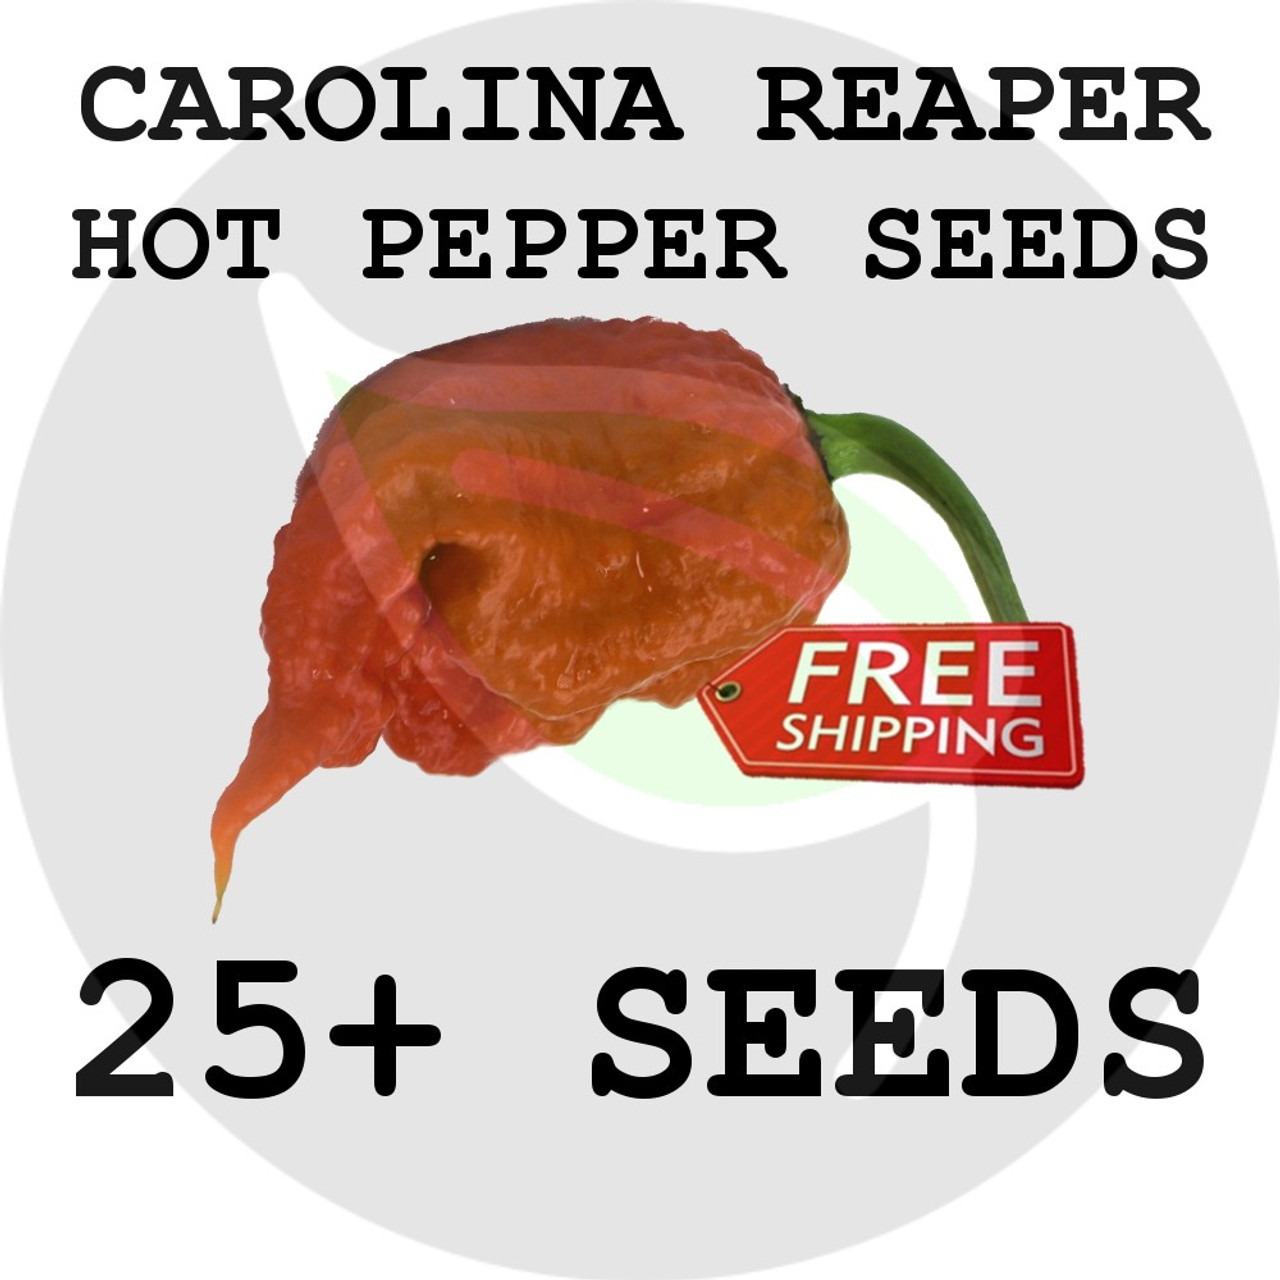 CAROLINA REAPER SEEDS - Premium Ultra Hot Pepper Seed, Small Batch Peppers  from the USA!